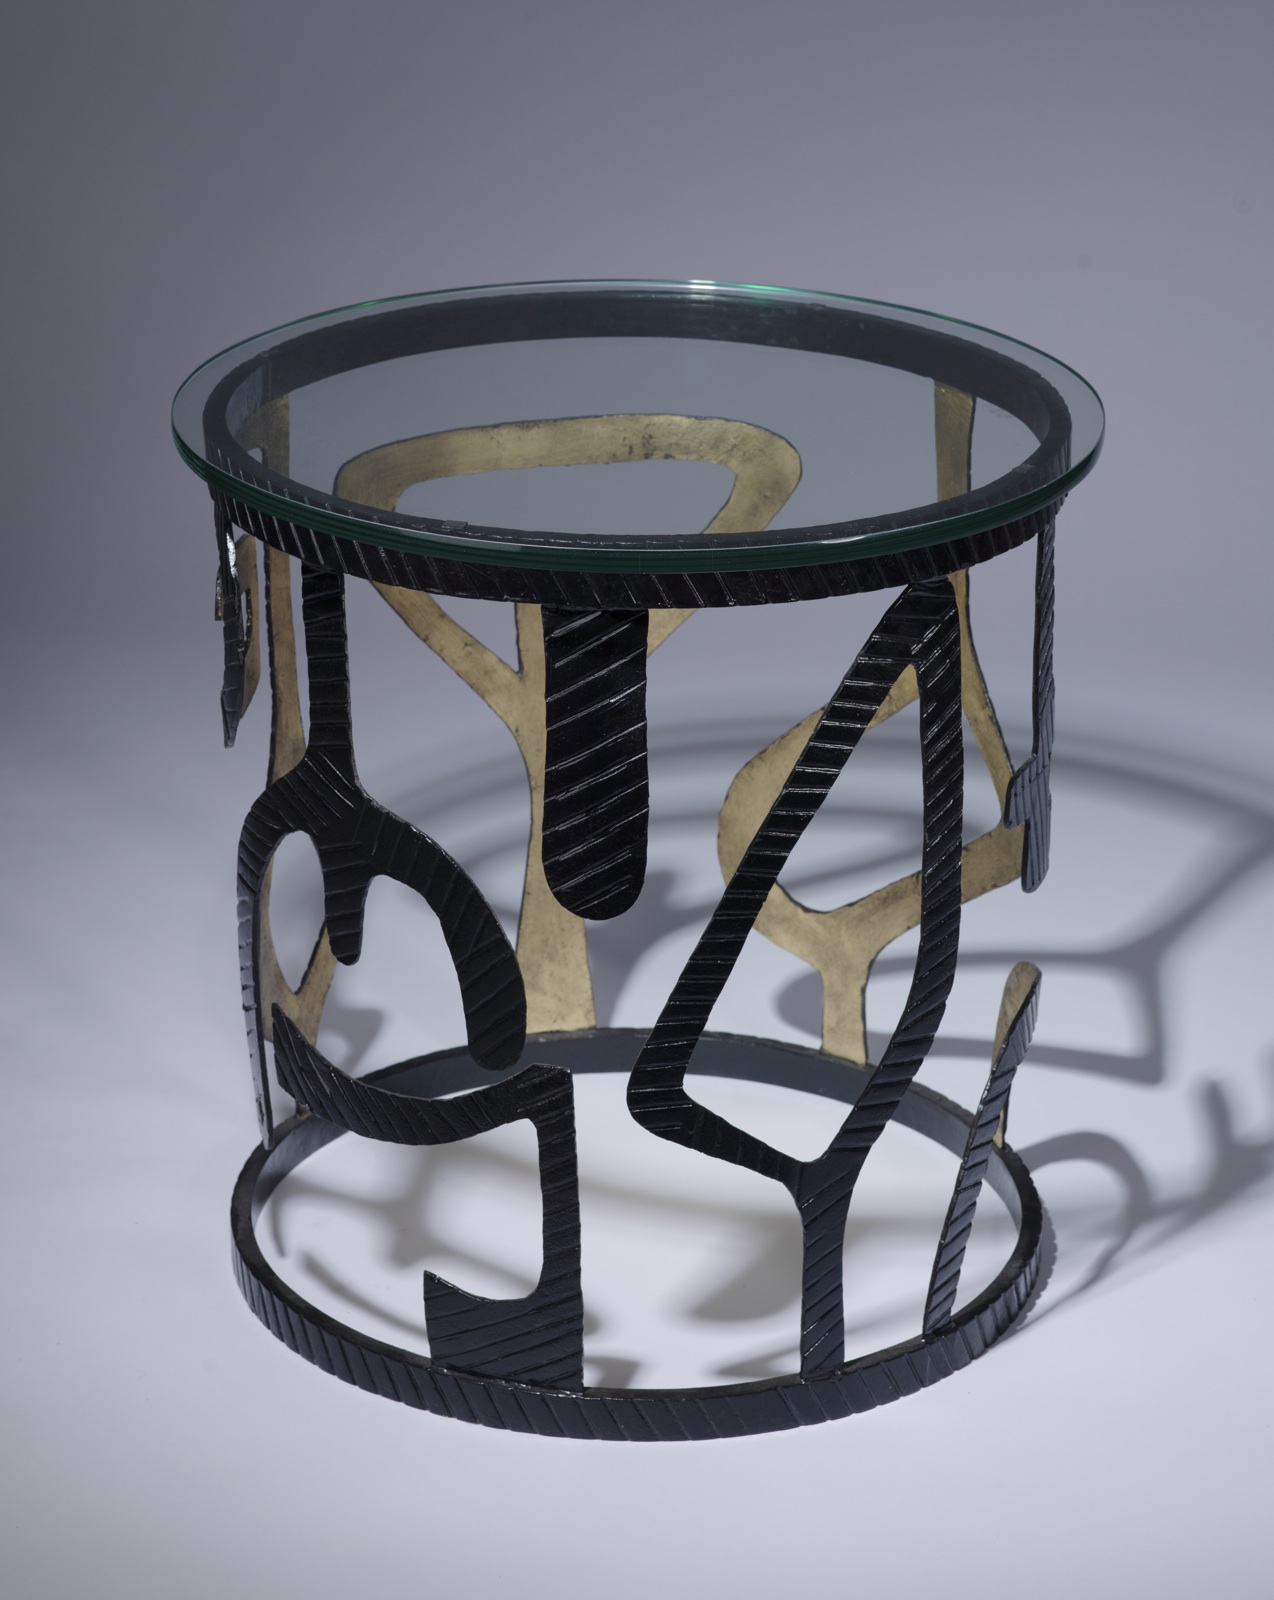 wrought iron 'miro' side table in black, gold finish with glass top